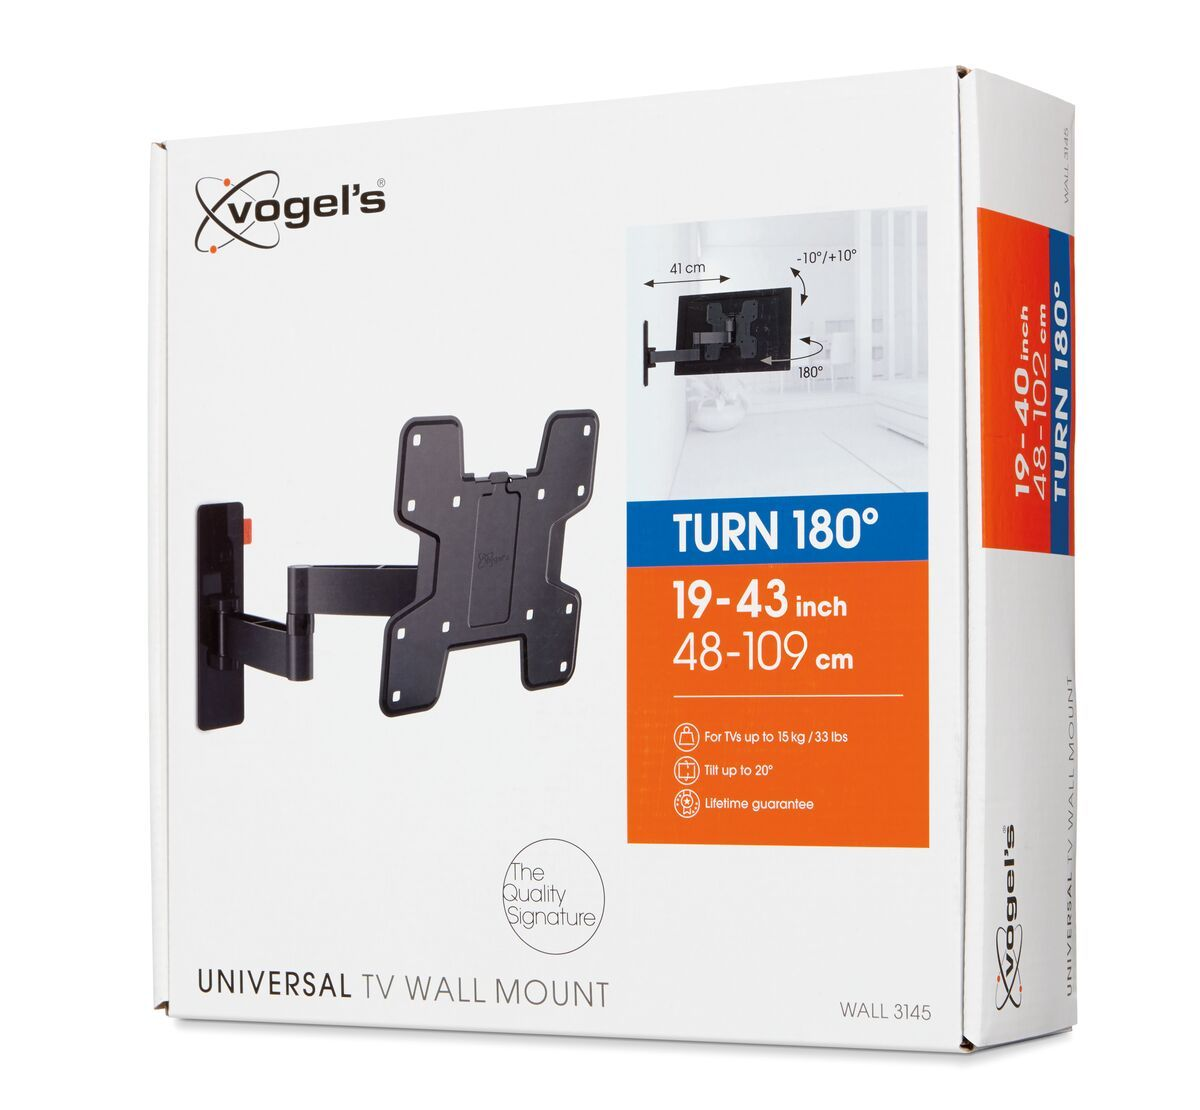 Vogel's WALL 3145 Full-Motion TV Wall Mount (black) - Suitable for 19 up to 43 inch TVs - Full motion (up to 180°) - Tilt -10°/+10° - Pack shot 3D